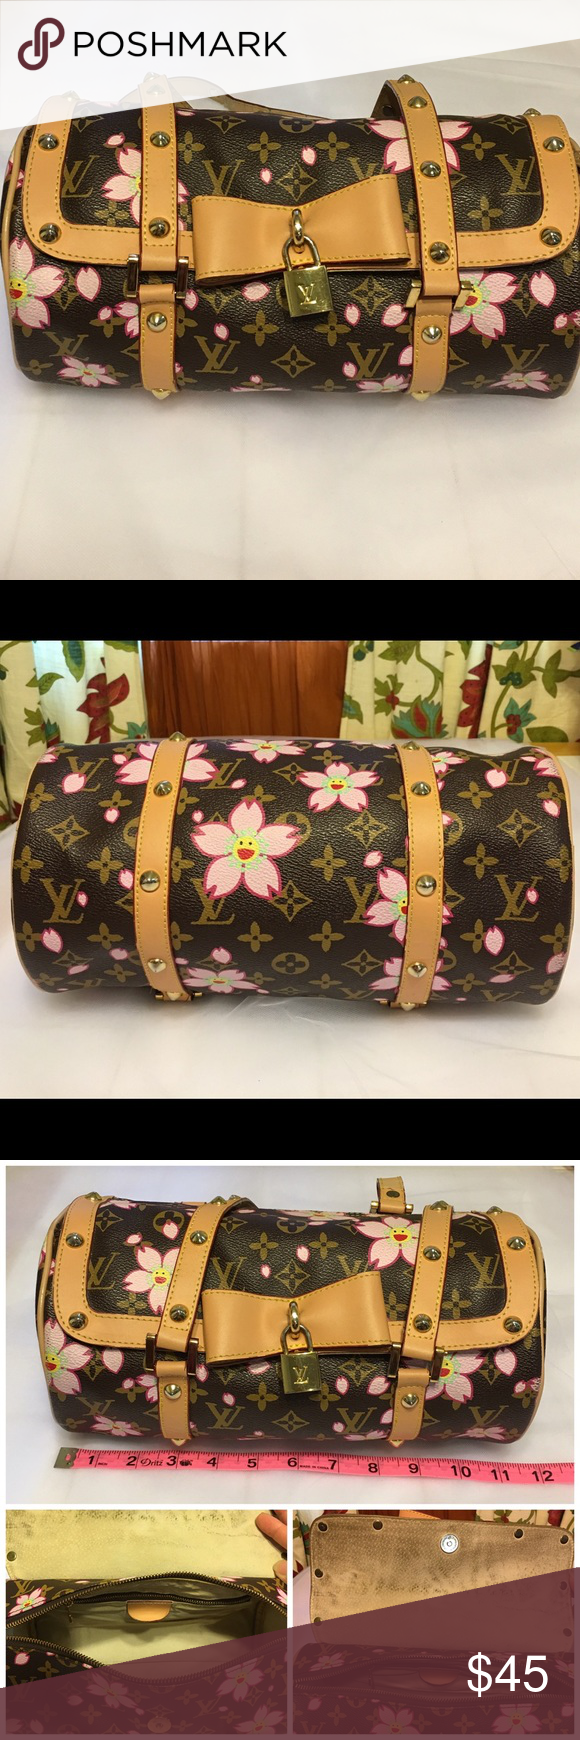 """Brown Purse with Flower Design🌺 Round Brown Purse with Flower Detail •Approximately:  L 11 1/2"""" x H 6"""" x D 6""""  •Handle: 25""""  •Condition: there is use as shown - edge of purse show some wear (2nd photo) / open flap shows use on suede (3rd photo) / inside of handle shows wear and tear (4th photo)  •Snap closure and zipper  •Inside compartment zipper  •lining suede  •Metal gold finish detail  🚫trade Bags Shoulder Bags"""